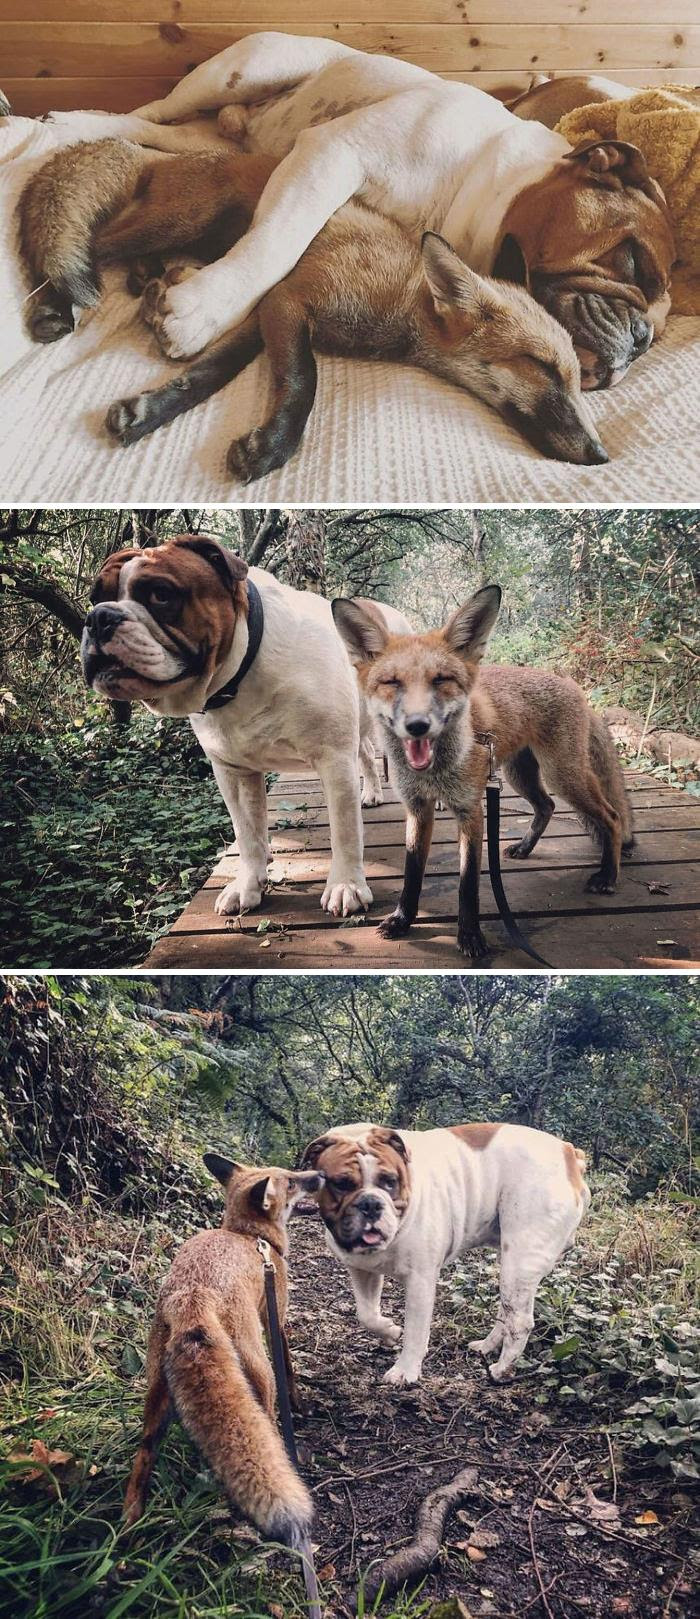 "Rescue Fox And A Bulldog Become Inseparable And Form A Real-Life ""The Fox And The Hound"" Friendship"